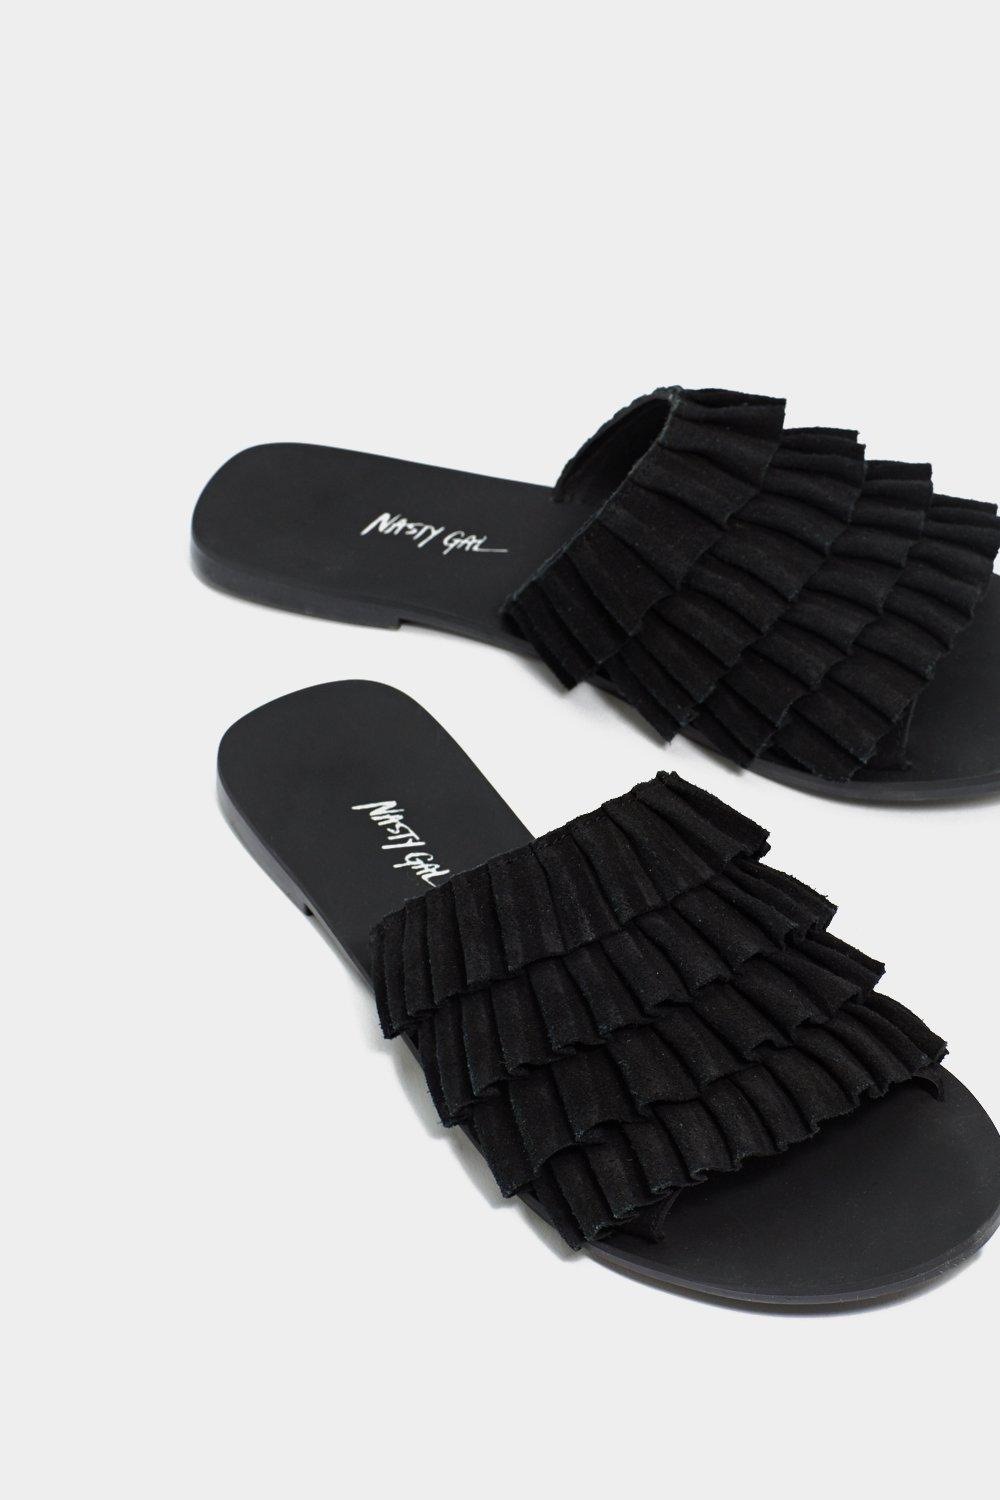 wholesale price cheap price Ruffle Road Ahead Suede Slide Sandal outlet countdown package discount amazing price free shipping excellent qm37lQNMe